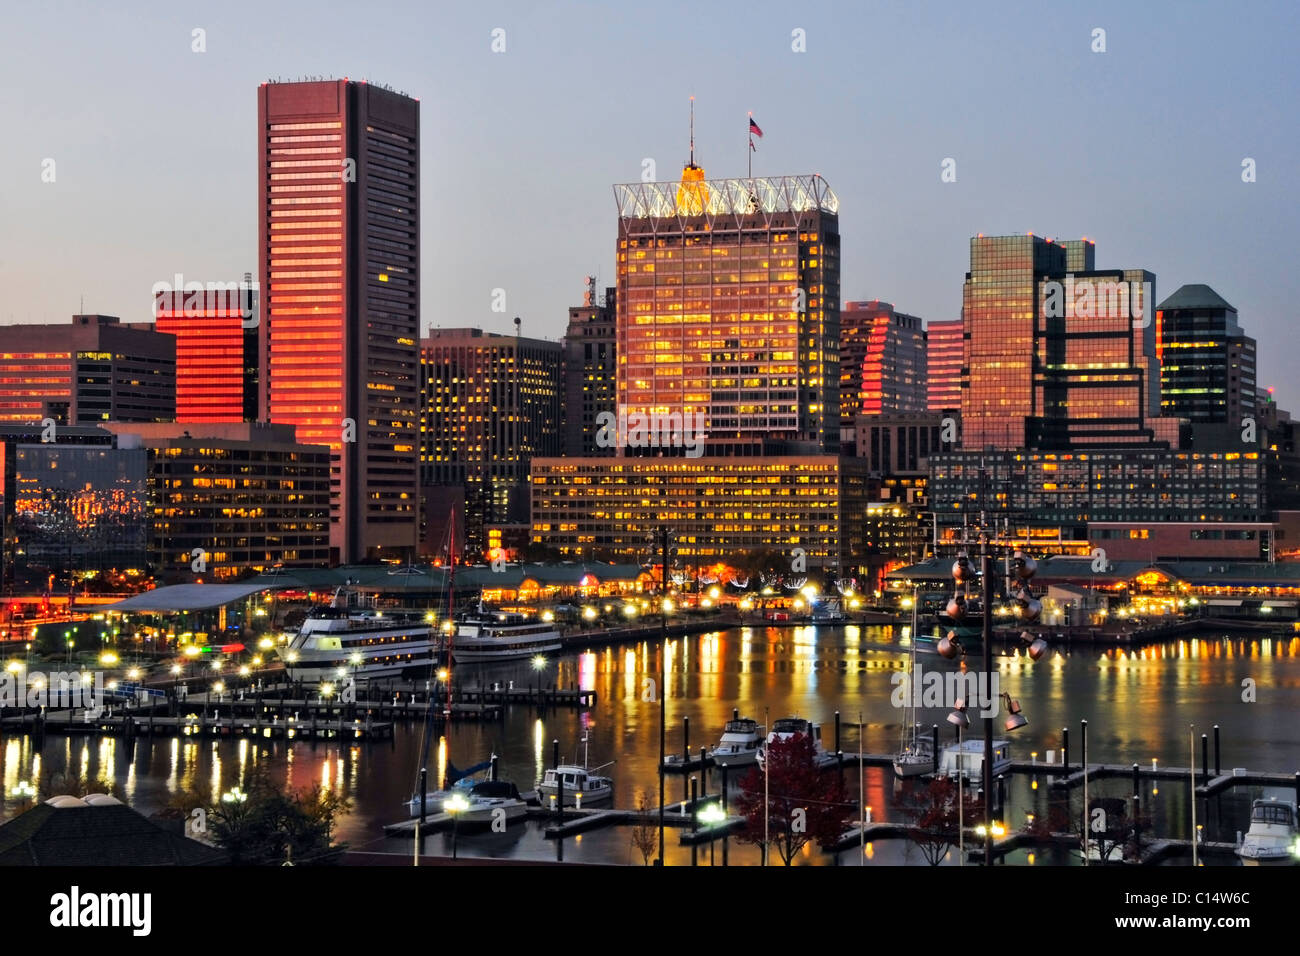 The sunset reflects off the windows of the Baltimore city skyline at dusk, Maryland. - Stock Image